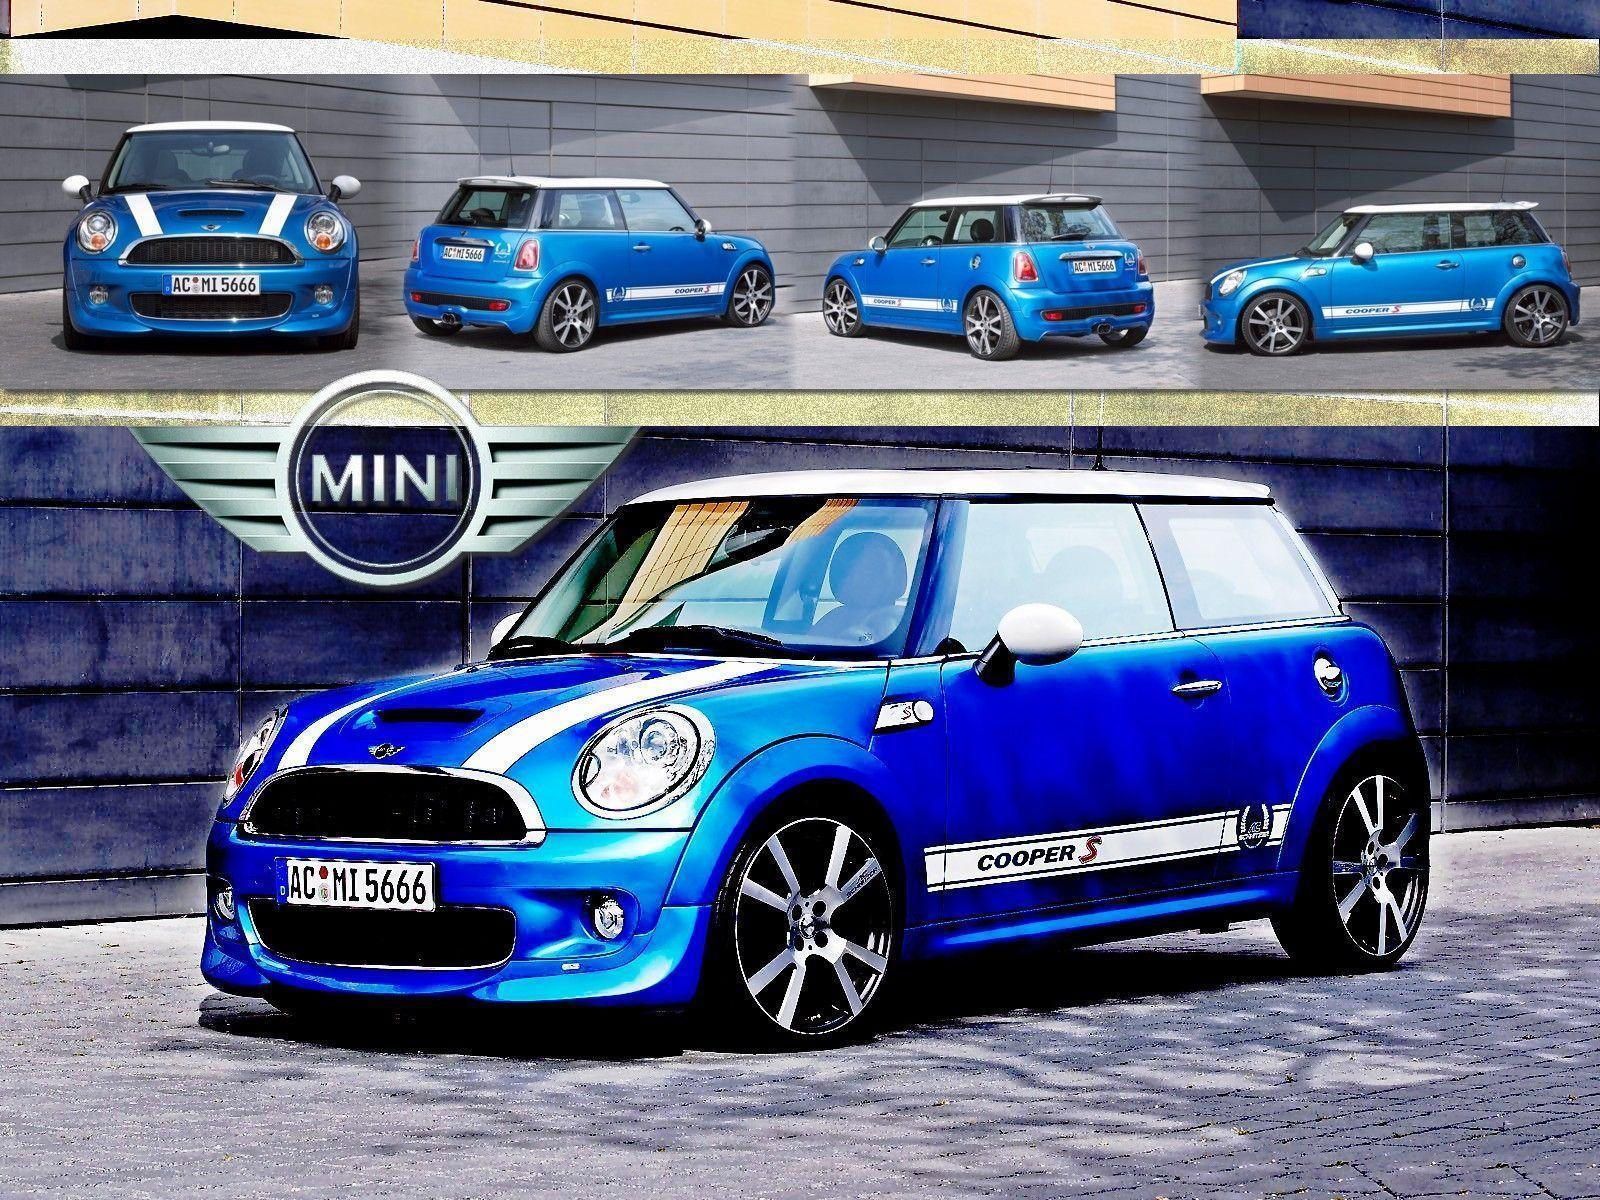 Wallpapers Mini Cooper Wallpapers